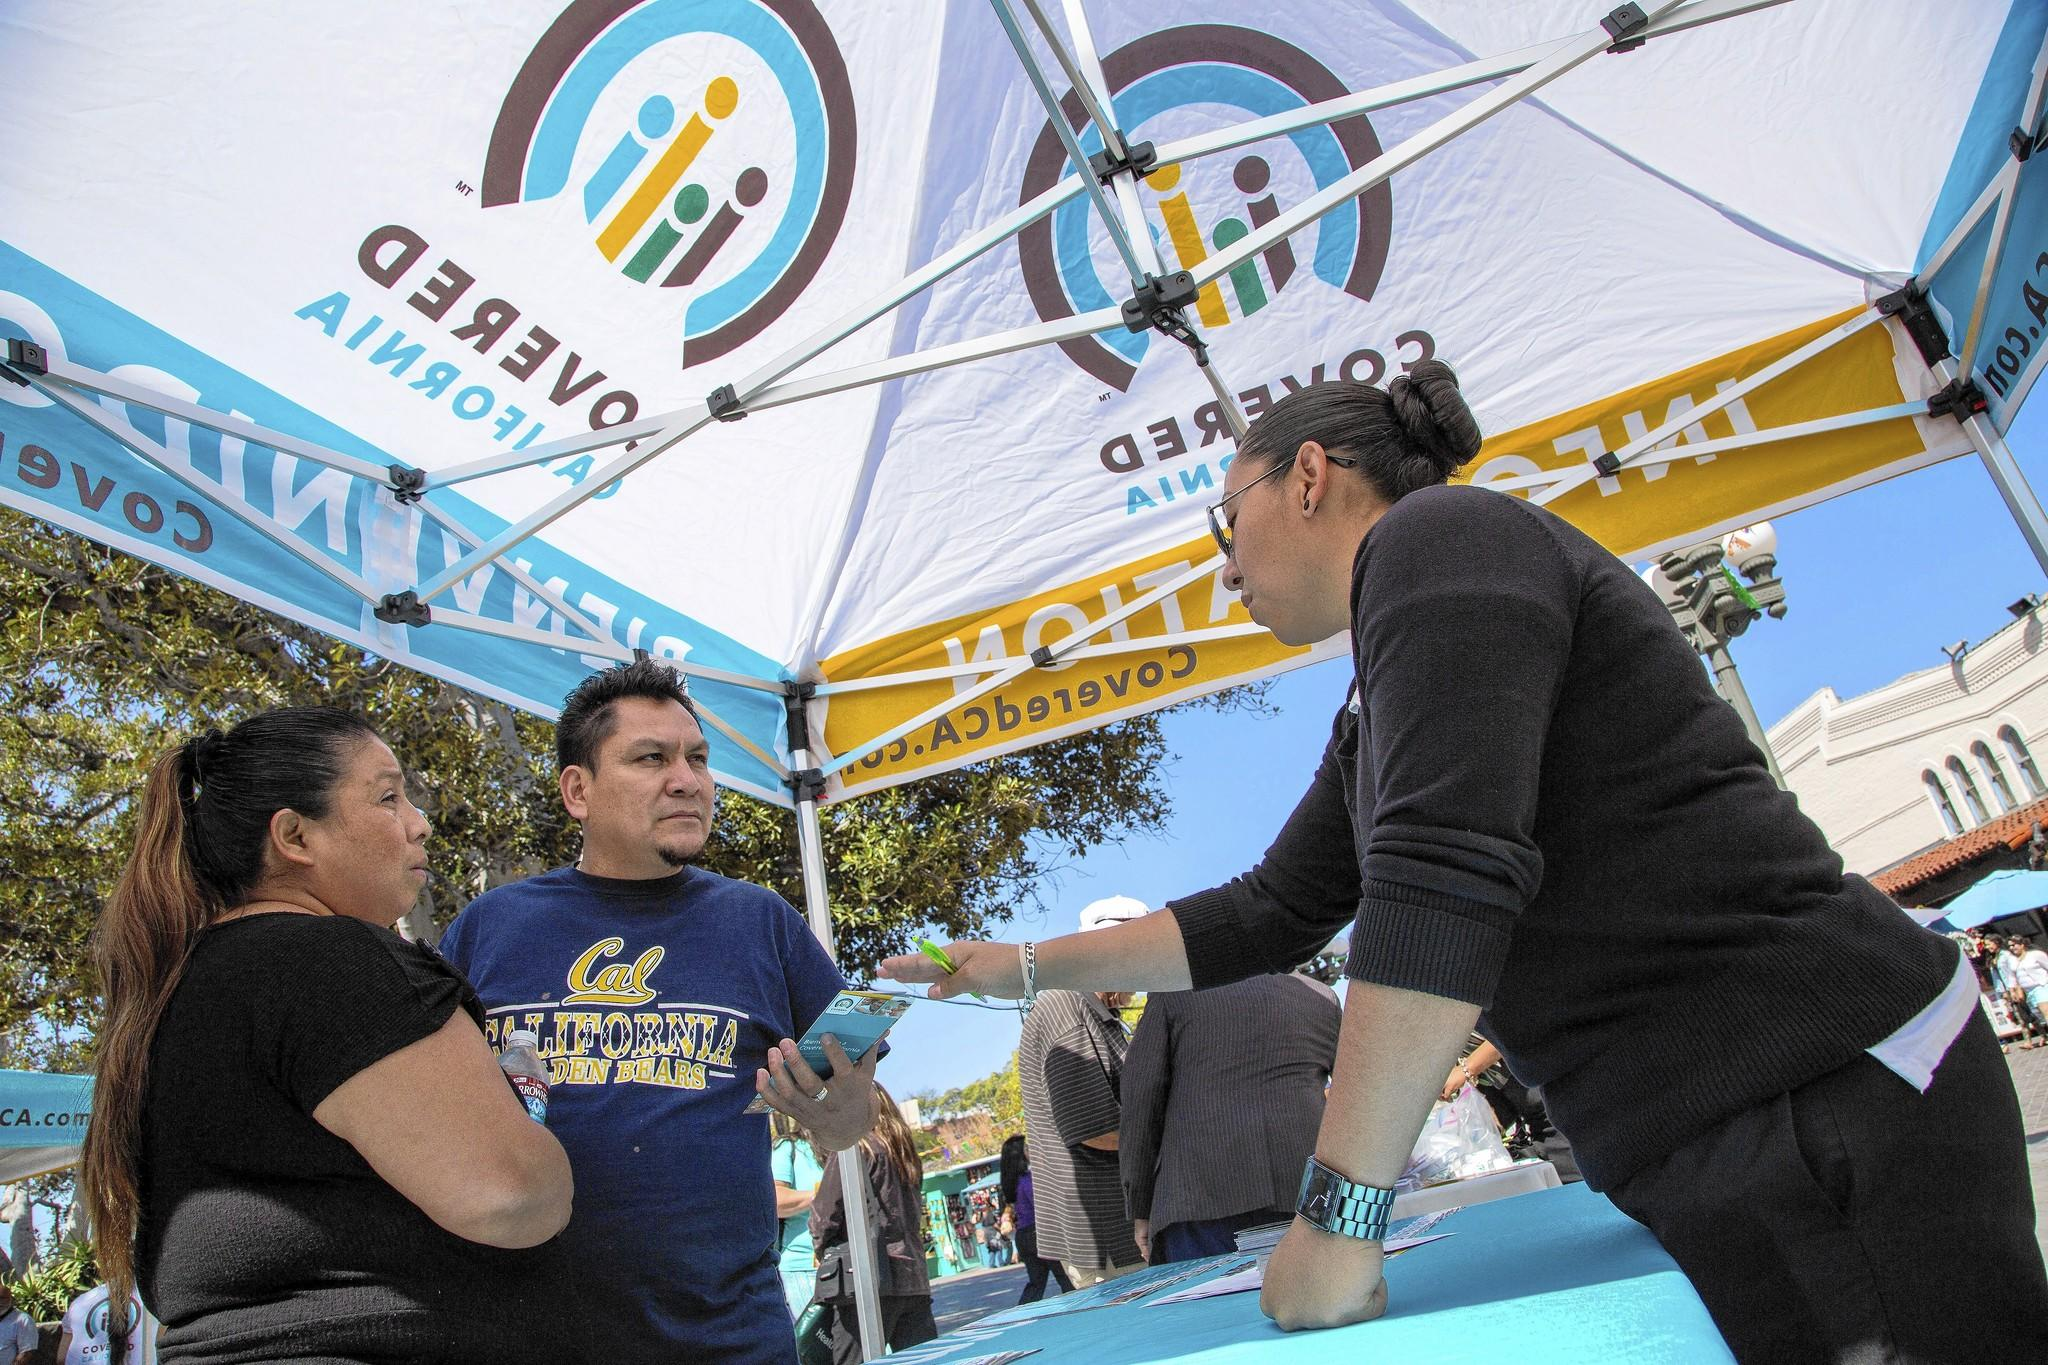 Ana Oliva, left, and Felix Portillo of Los Angeles get insurance information from Valeria Lopez at a Covered California event.